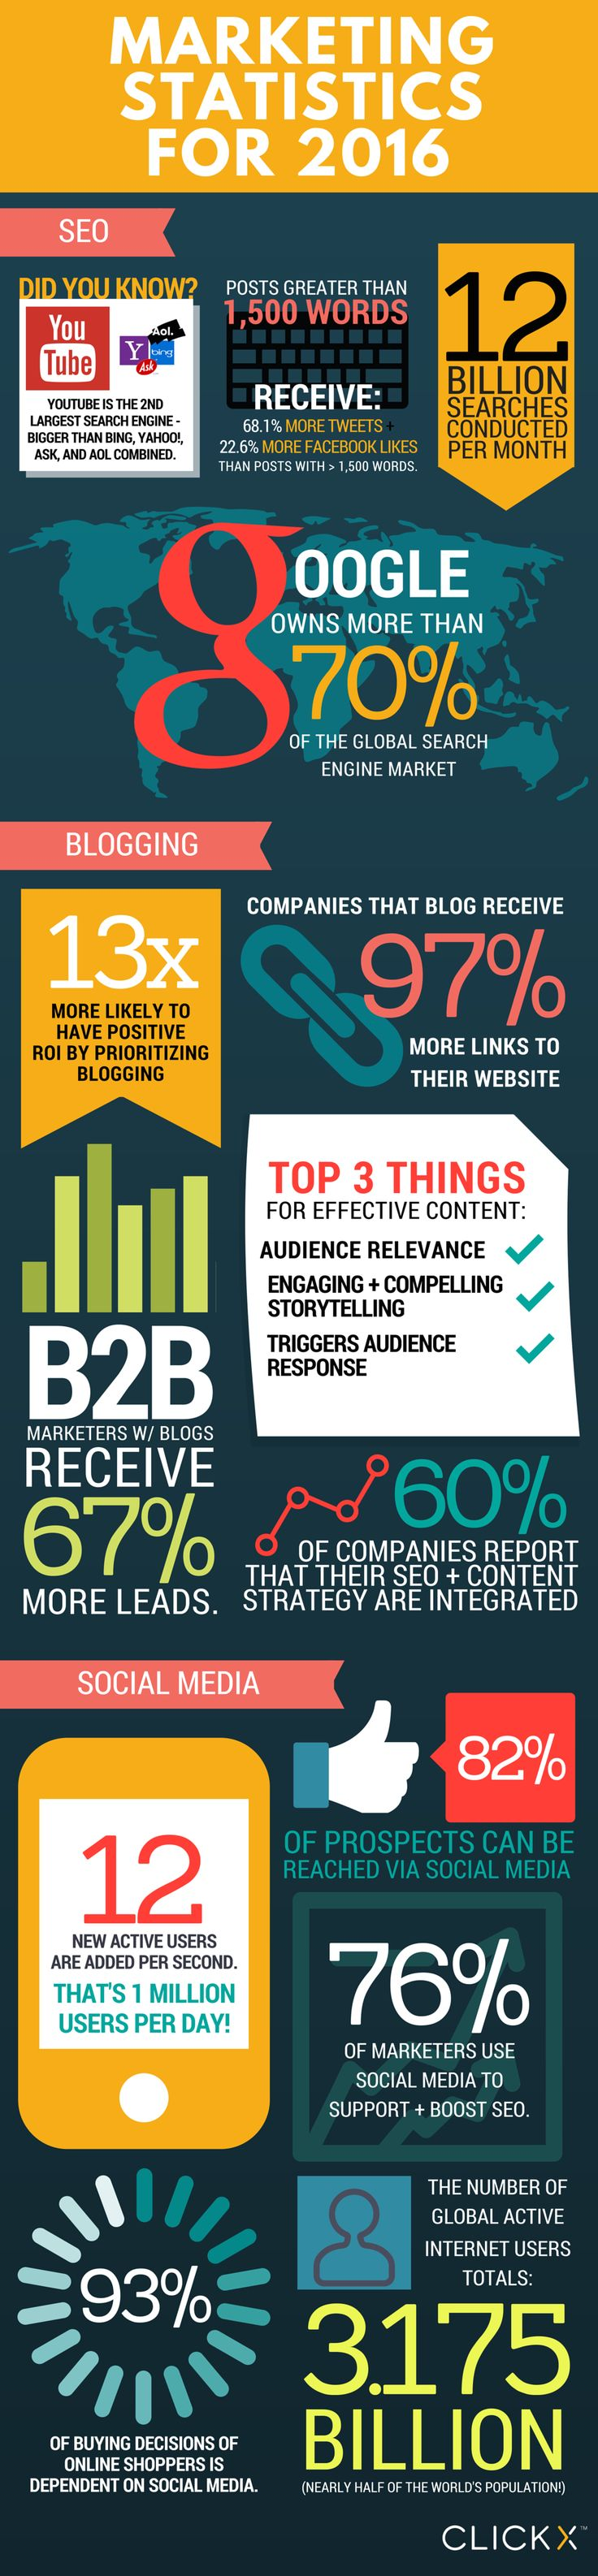 Marketing Stats Infographic 2016